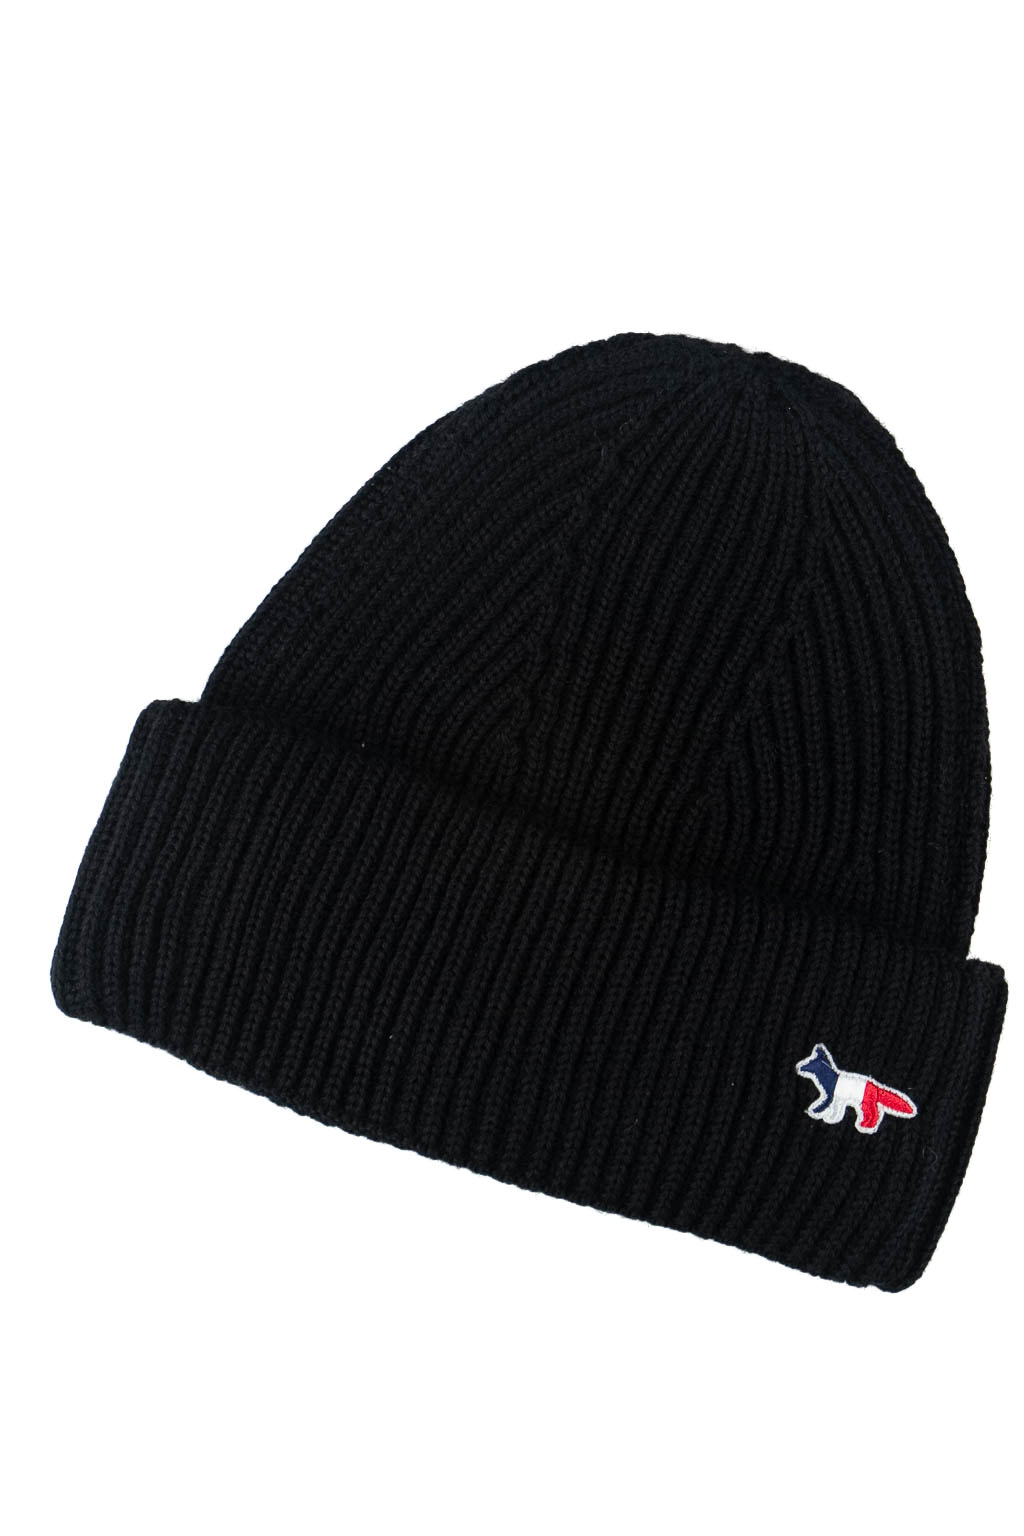 Maison Kitsune Ribbed Hat - Tricolor Fox Patch in 4 colour Choice